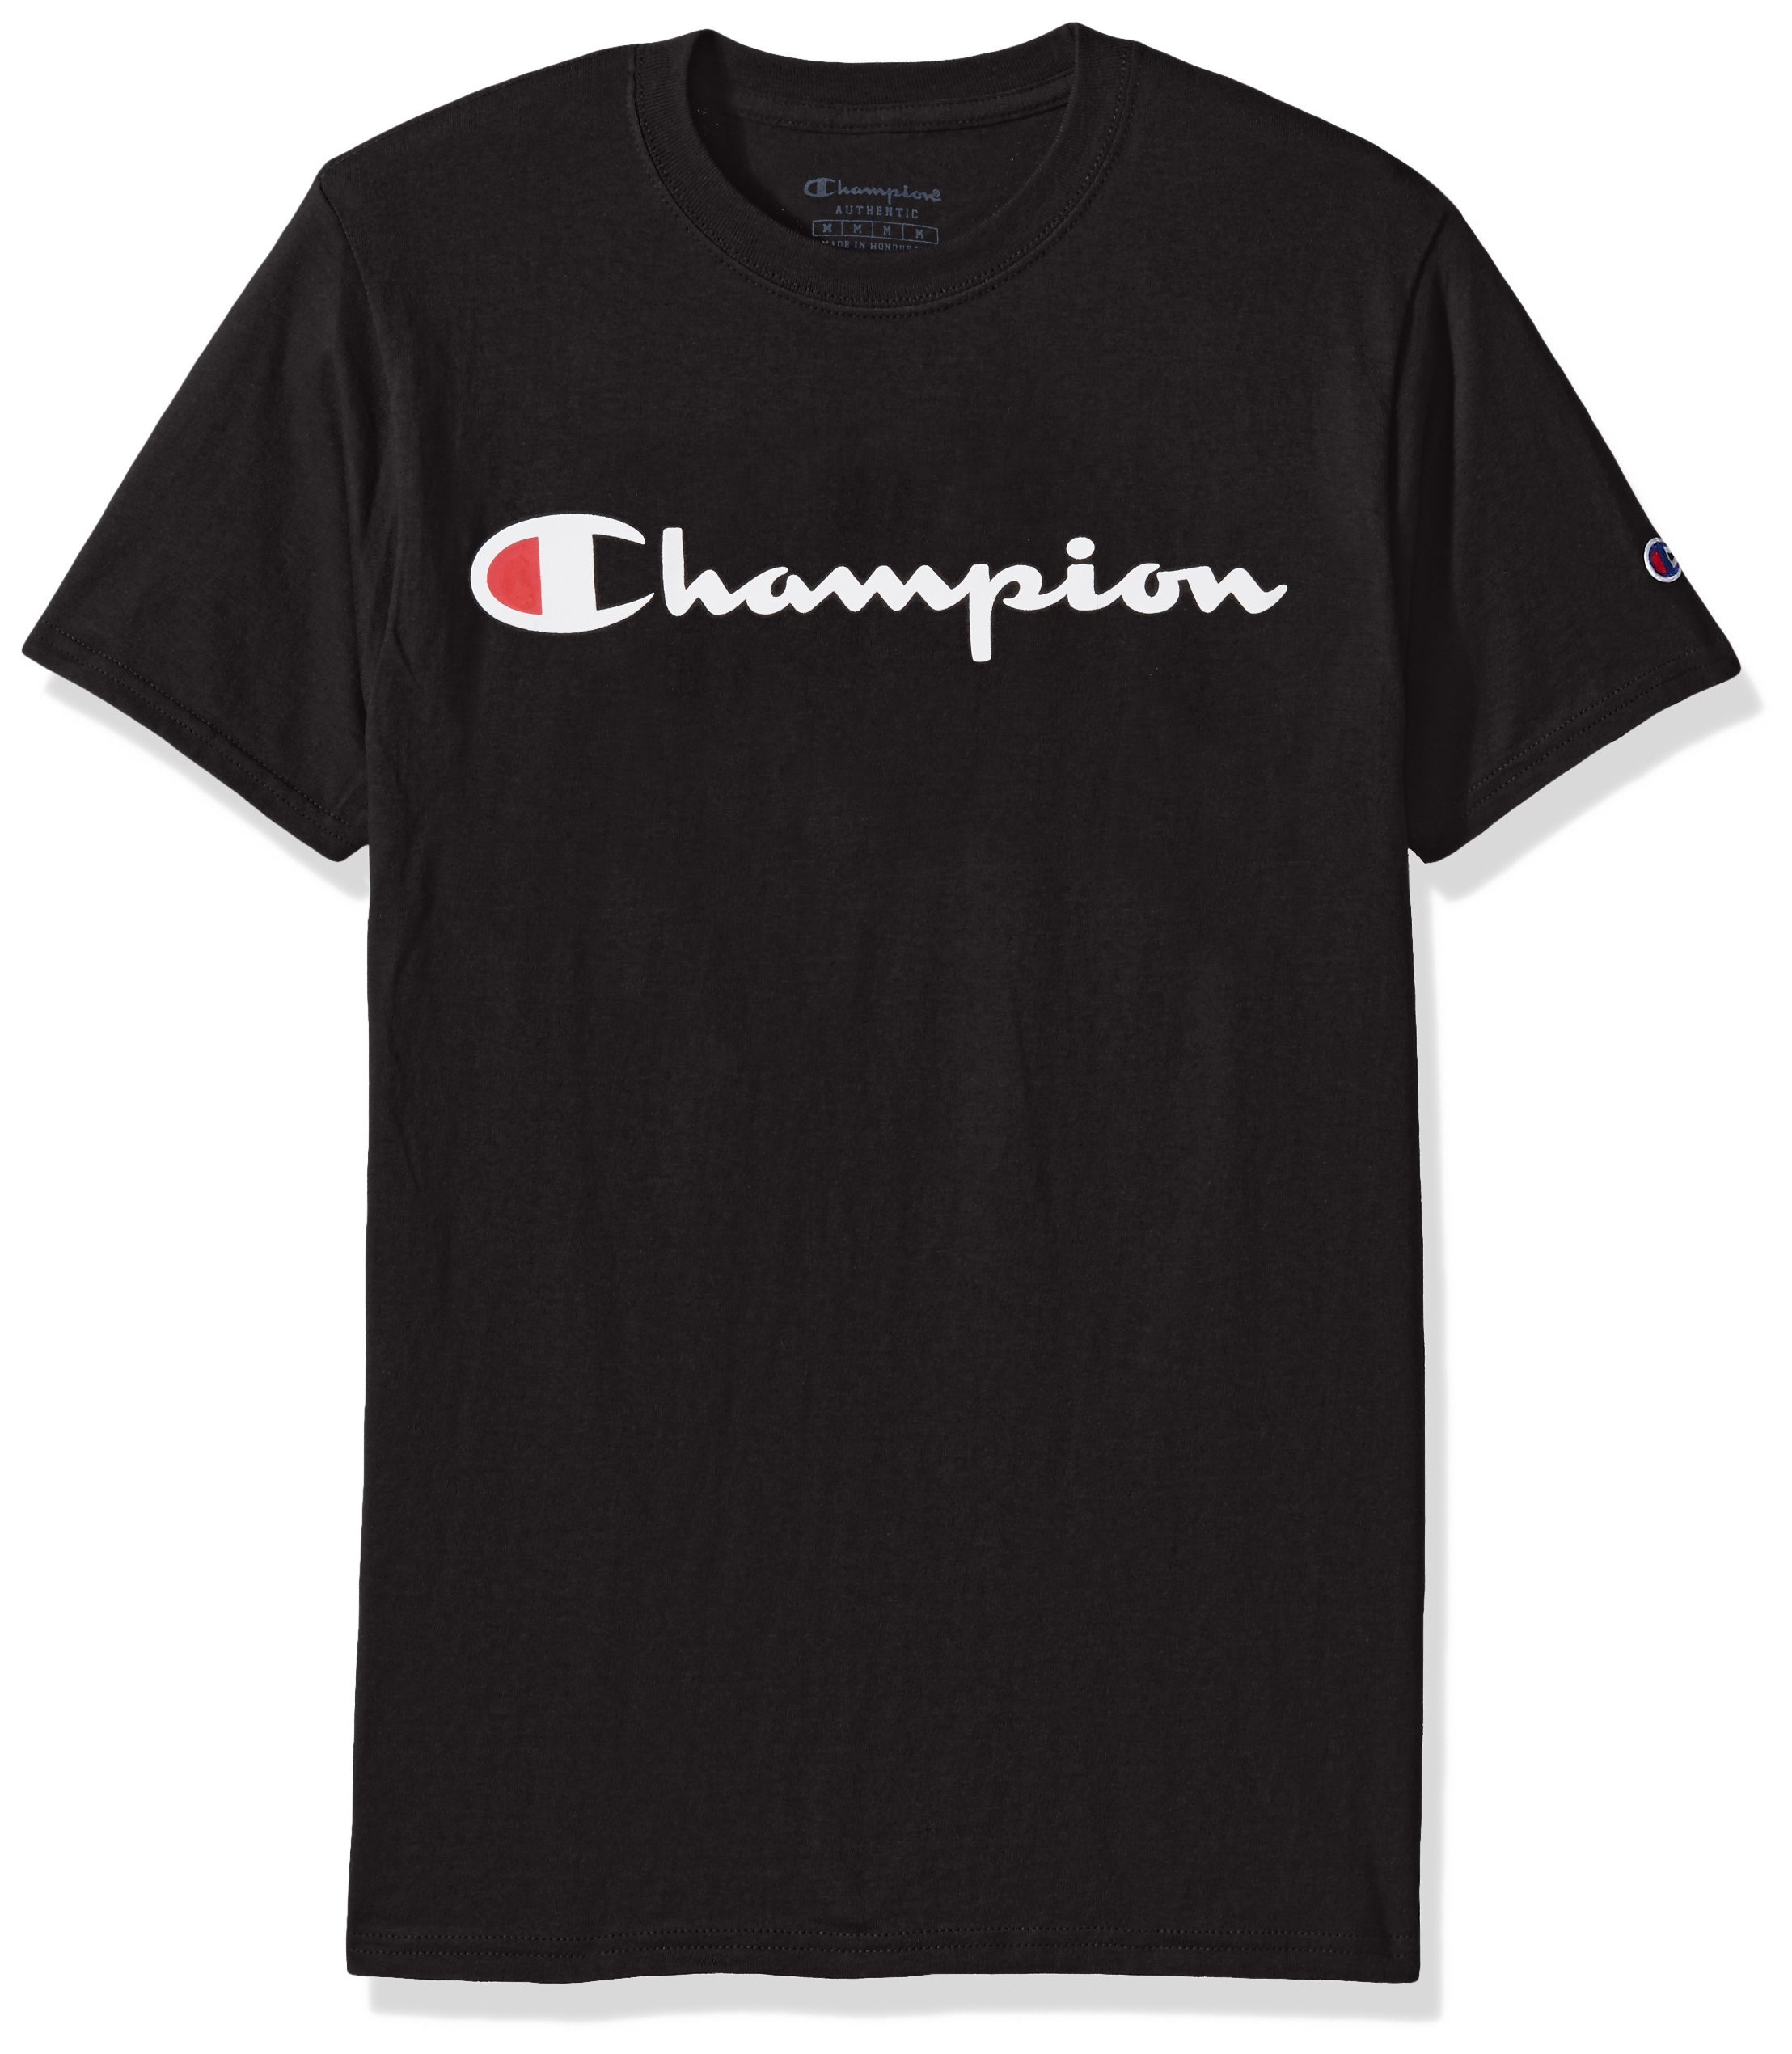 Champion Men's Classic Jersey Script T-Shirt, Black, M by Champion